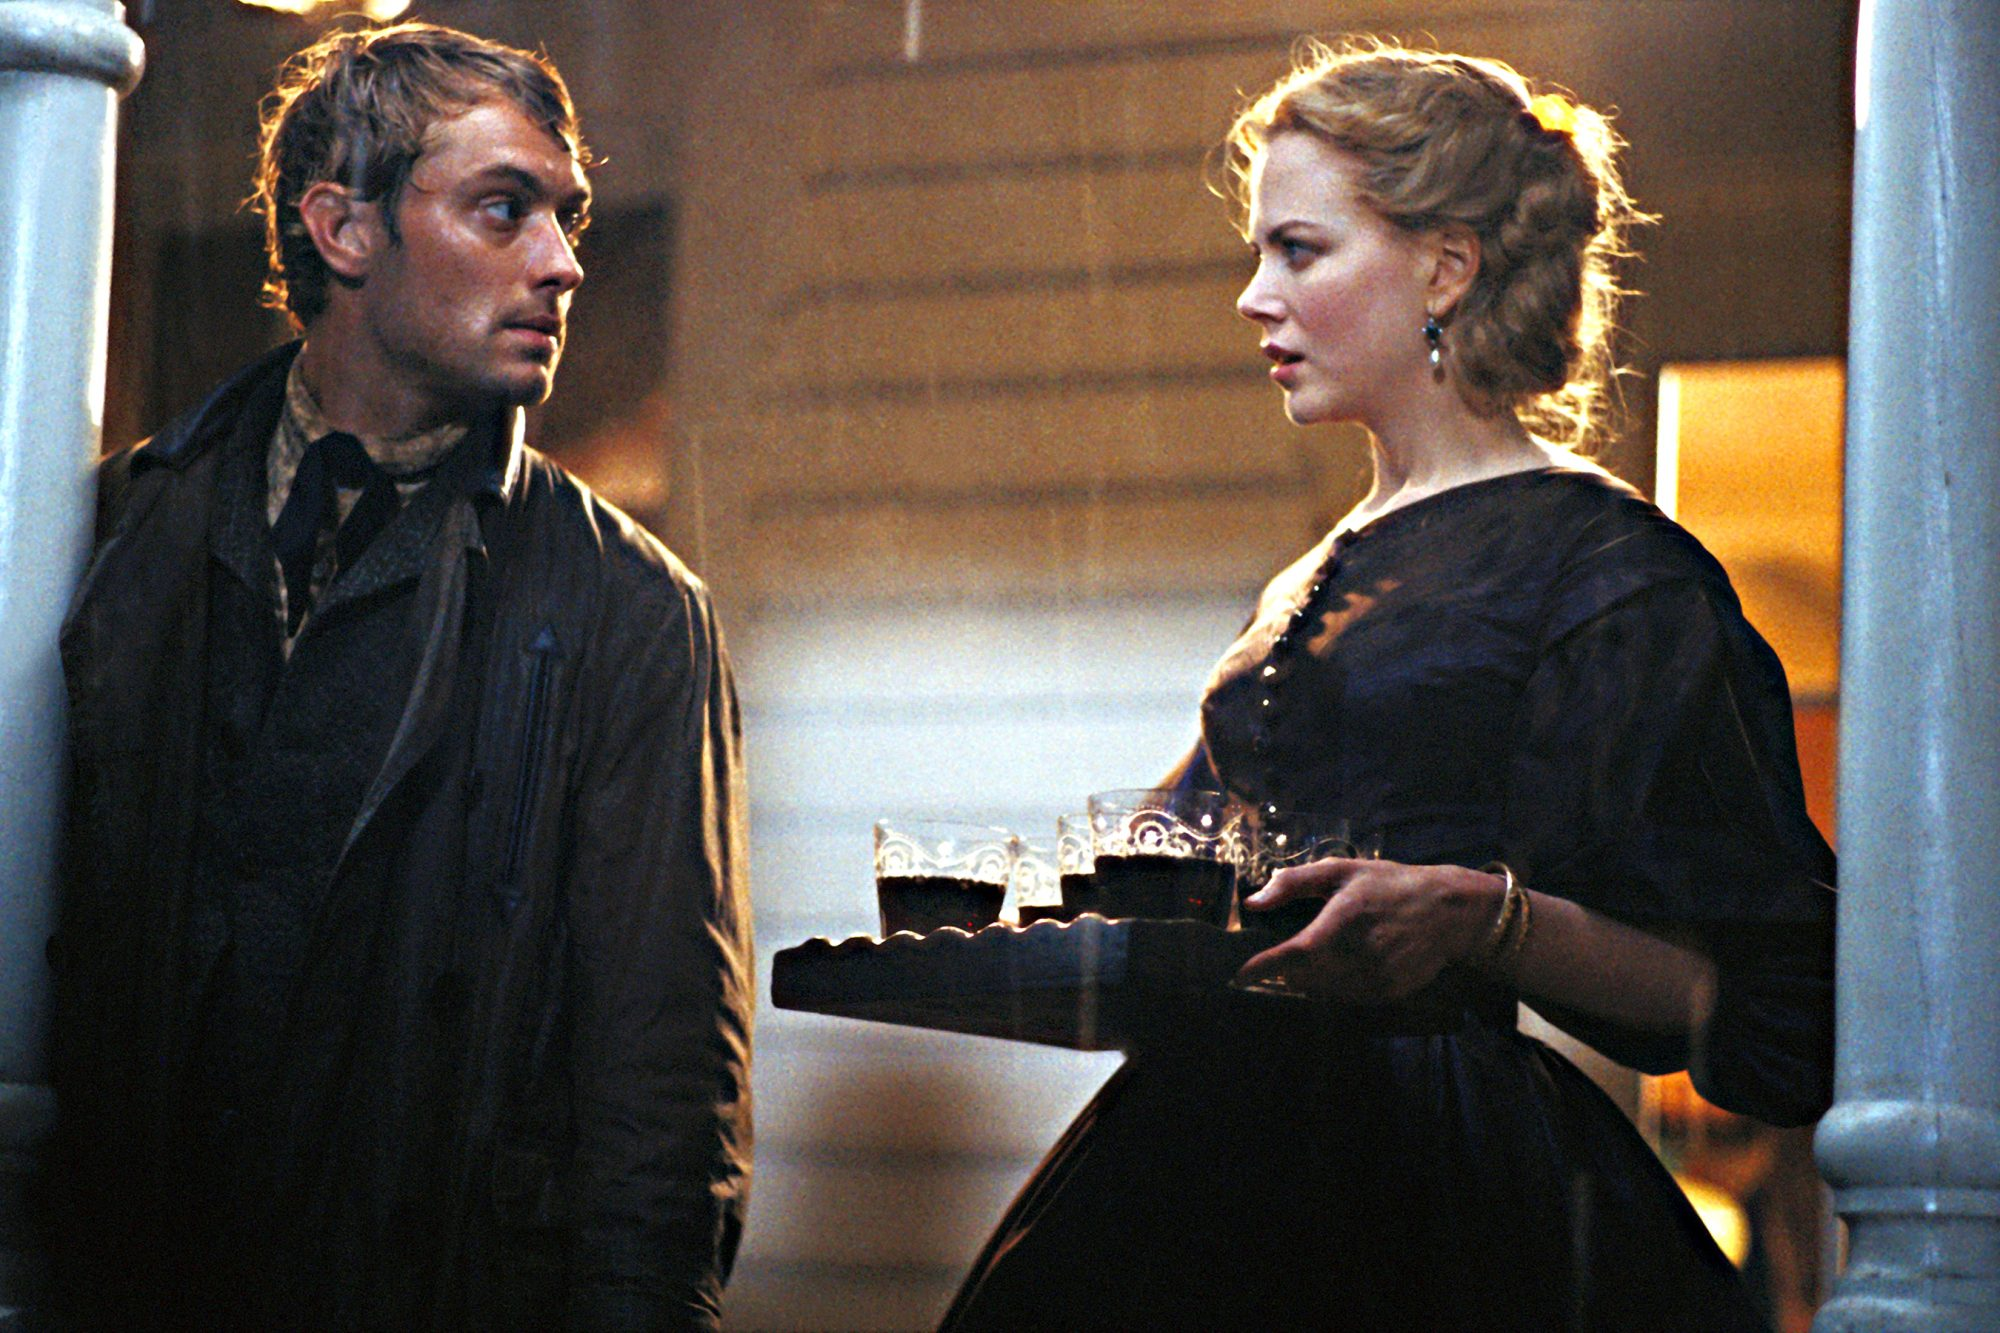 COLD MOUNTAIN, Jude Law, Nicole Kidman, 2003. (c) Miramax/Courtesy: Everett Collection.